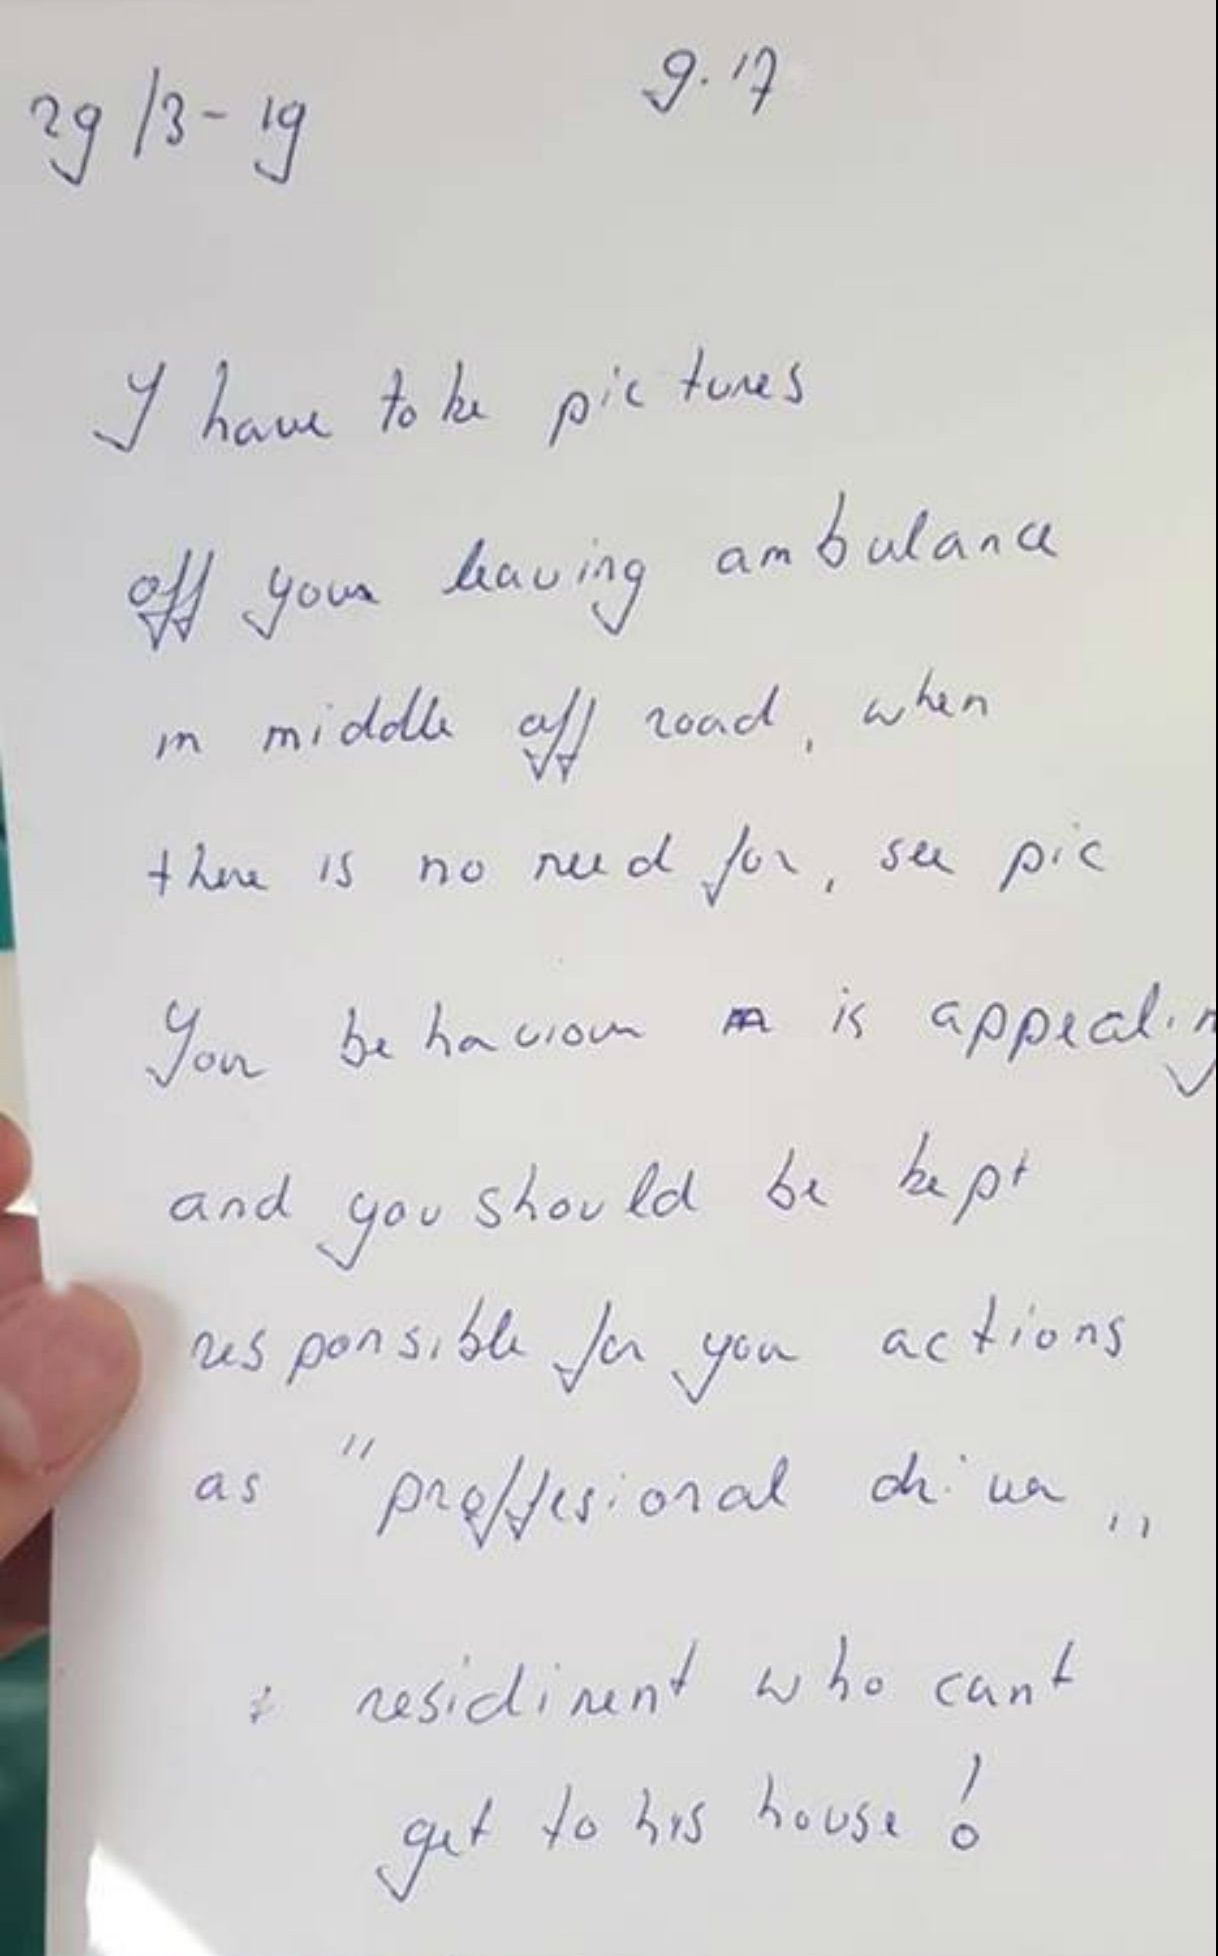 The note was left by an angry resident on the ambulance calling the paramedic 'appalling' (Picture: Chris James Nixon/Facebook)